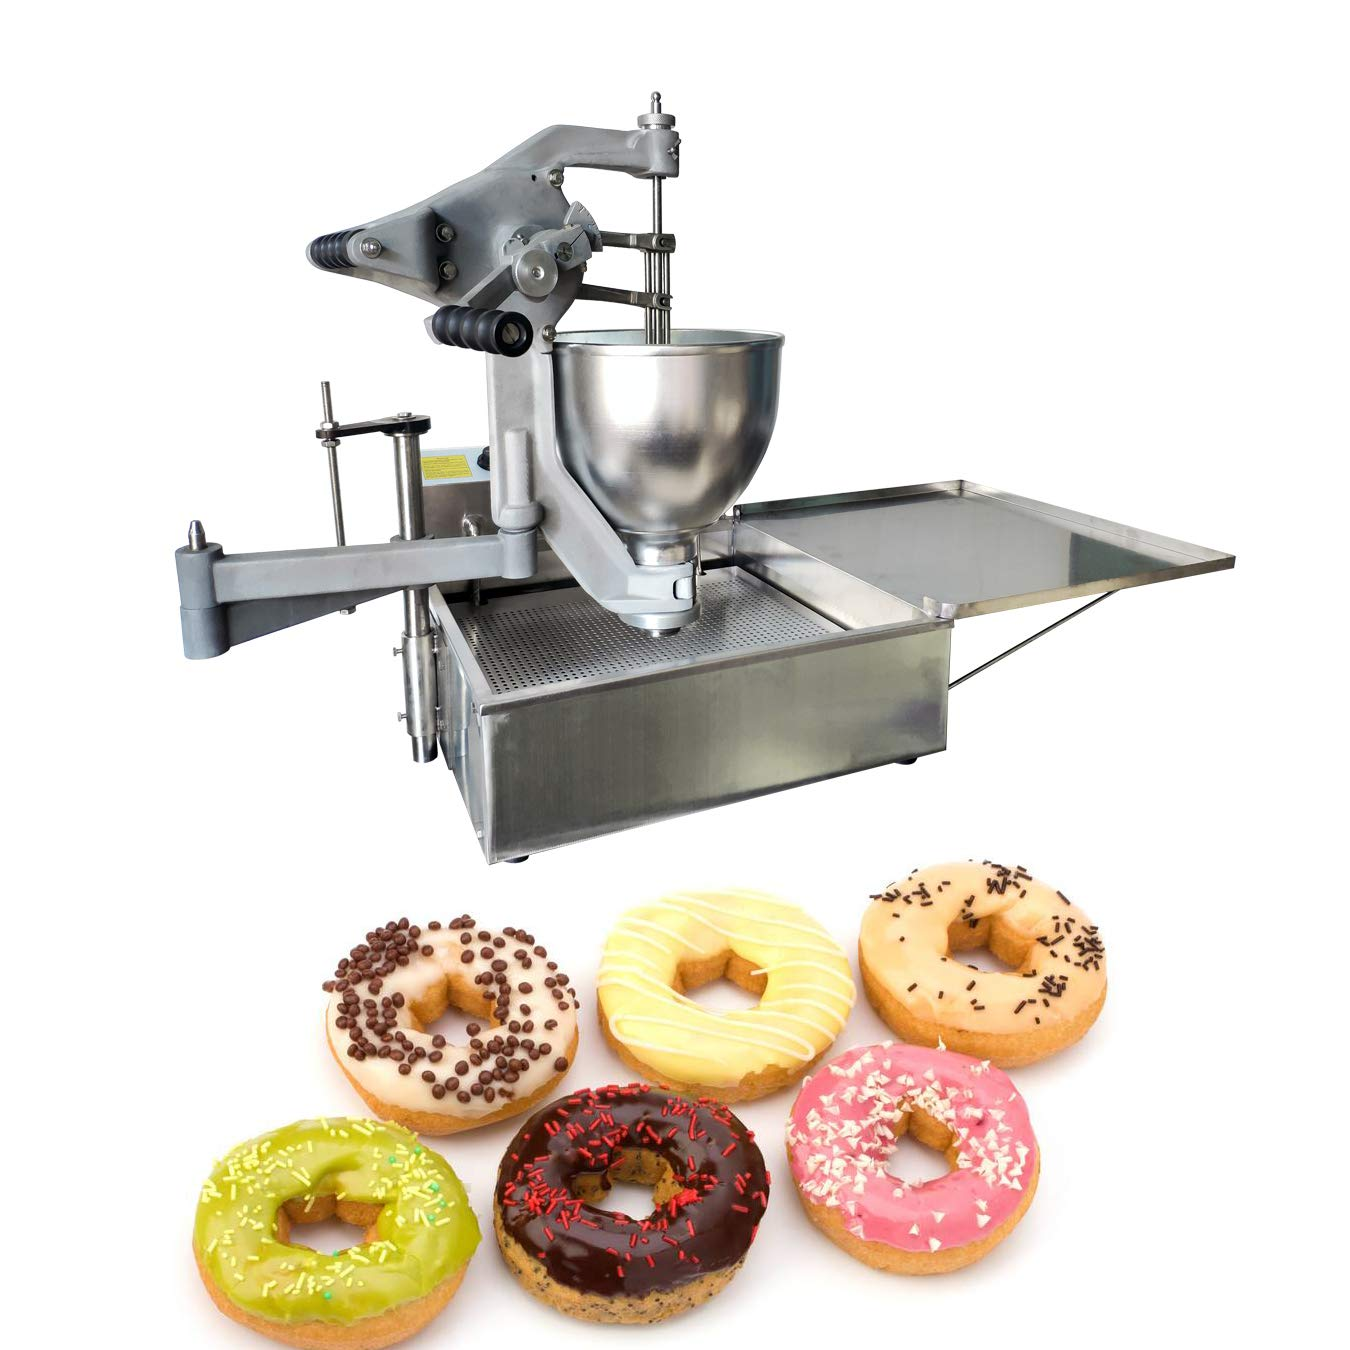 TECHTONGDA Donut Fryer Machine Commercial Electric Donut Maker Machine for Donut Doughnut Making Frying Donut Machine with 3 Moulds 9L Capacity Hopper Stainless Steel 220V 3KW